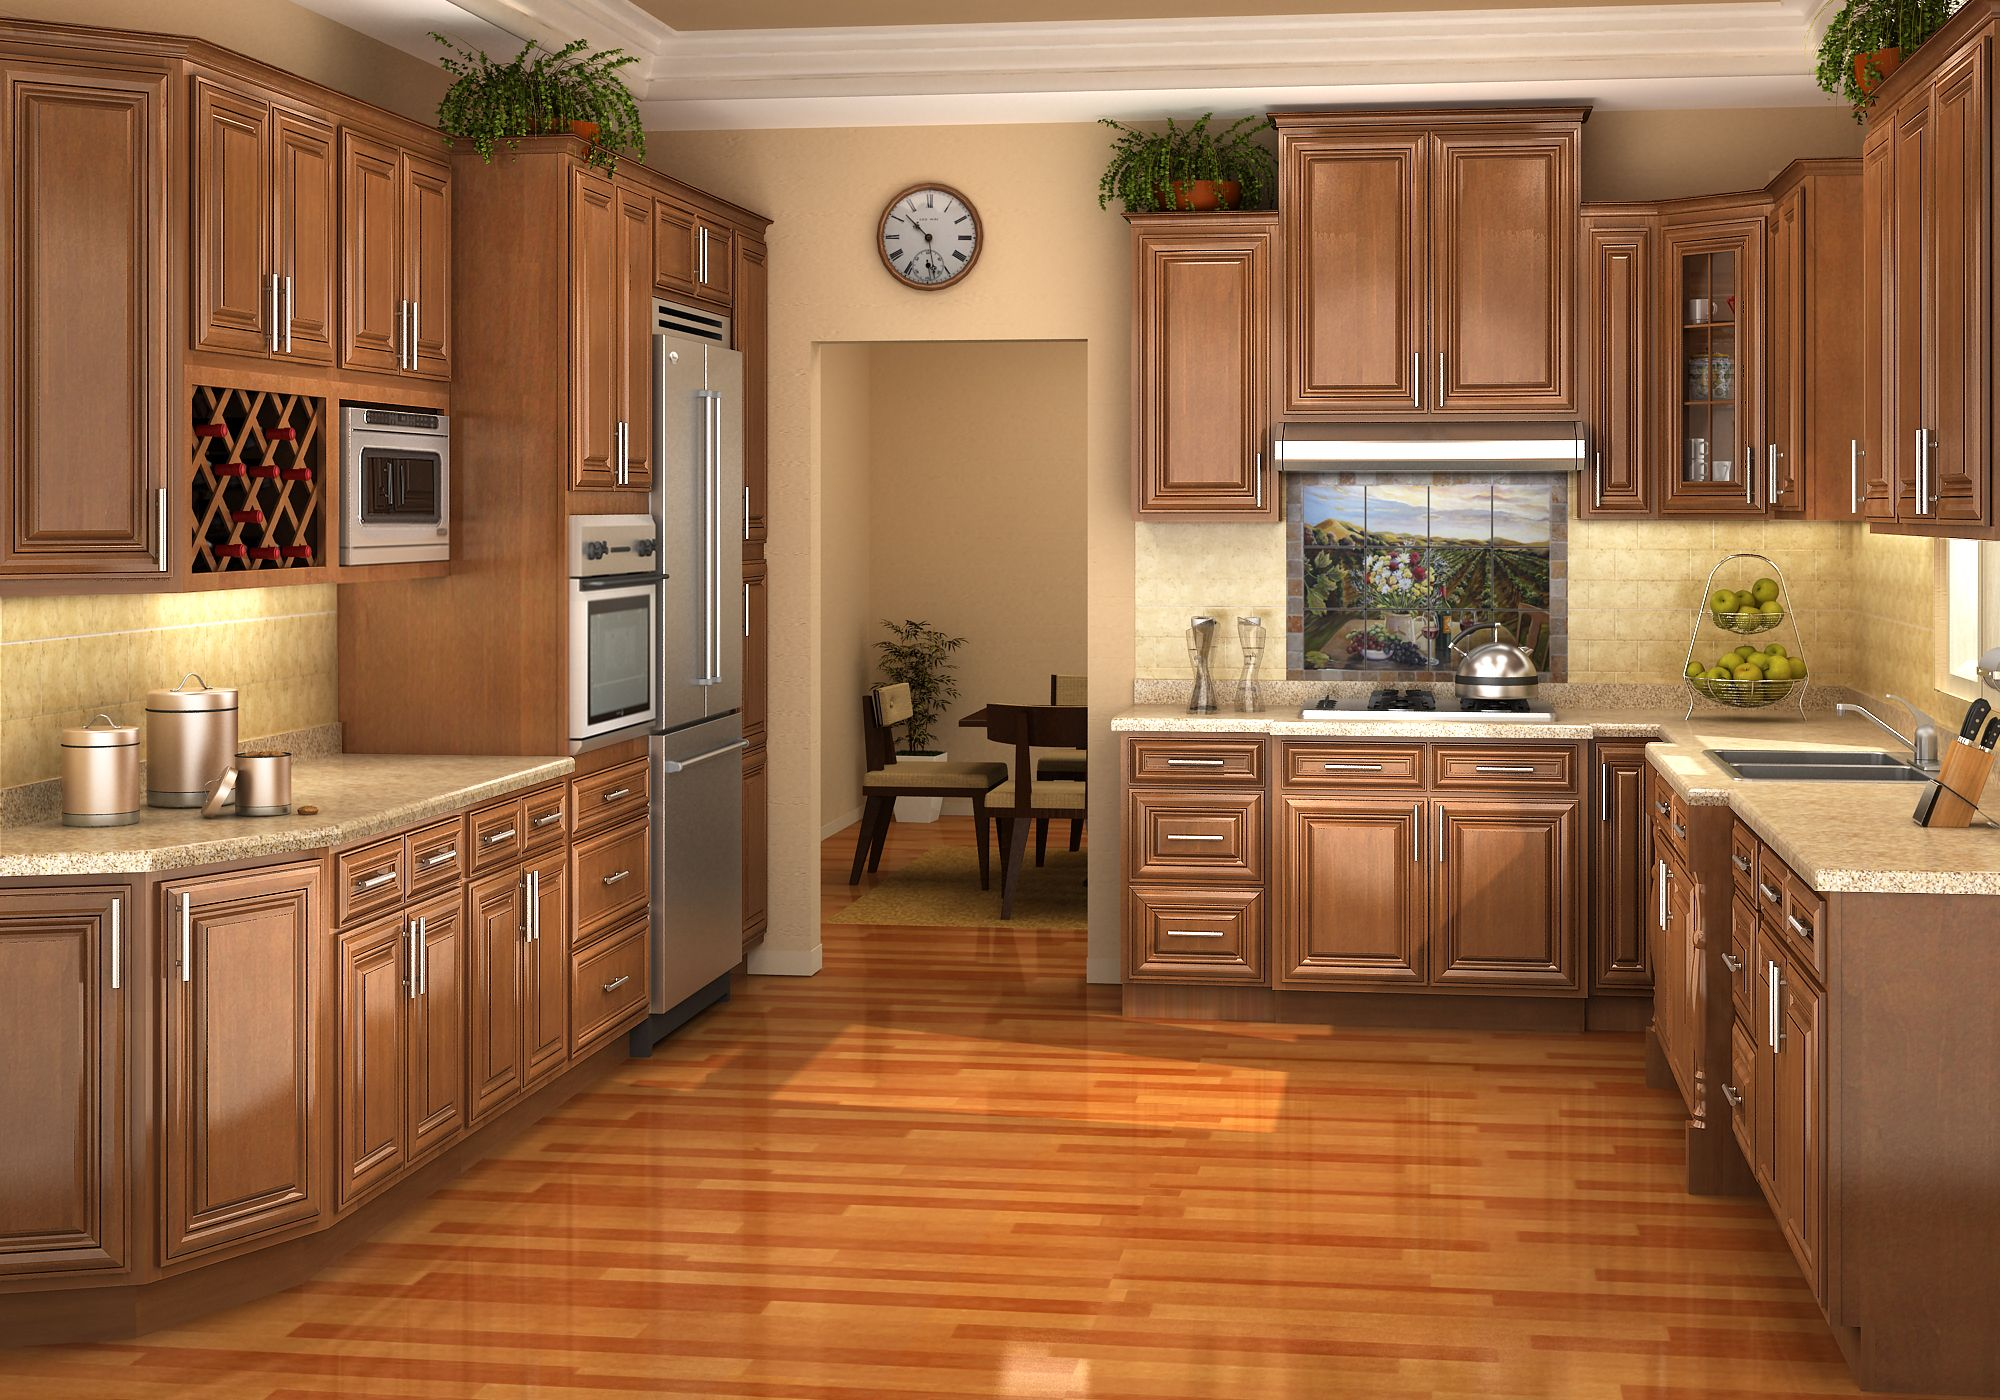 The Imperial Shaker Preassembled Kitchen Cabinet Collection Amusing Design Ideas For Kitchen Cabinets Decorating Inspiration